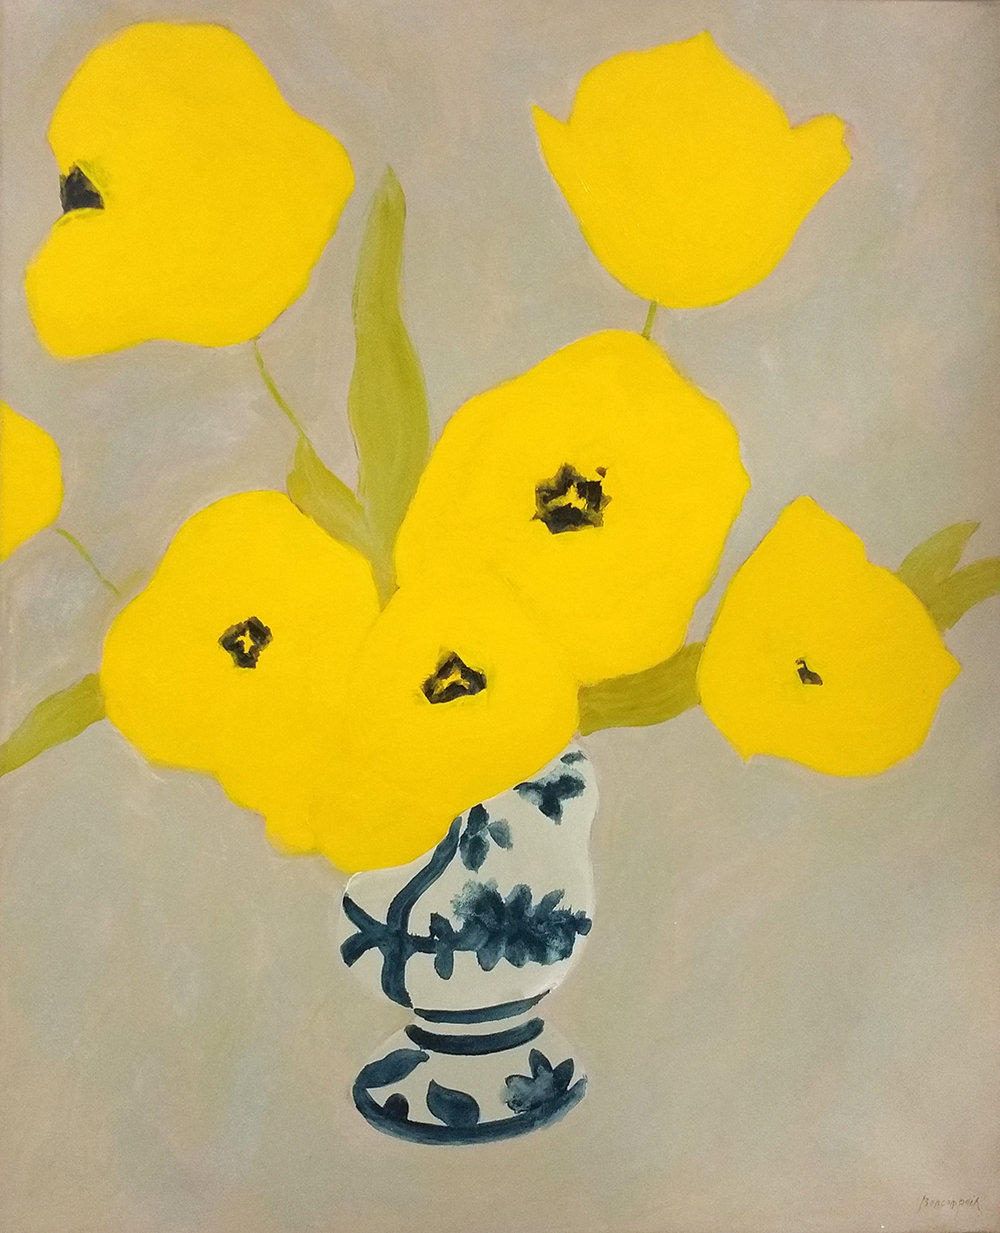 SOLD PIERRE BONCOMPAIN, Tulipes jaunes au coeur noir,  oil on canvas, 44 x 57 in